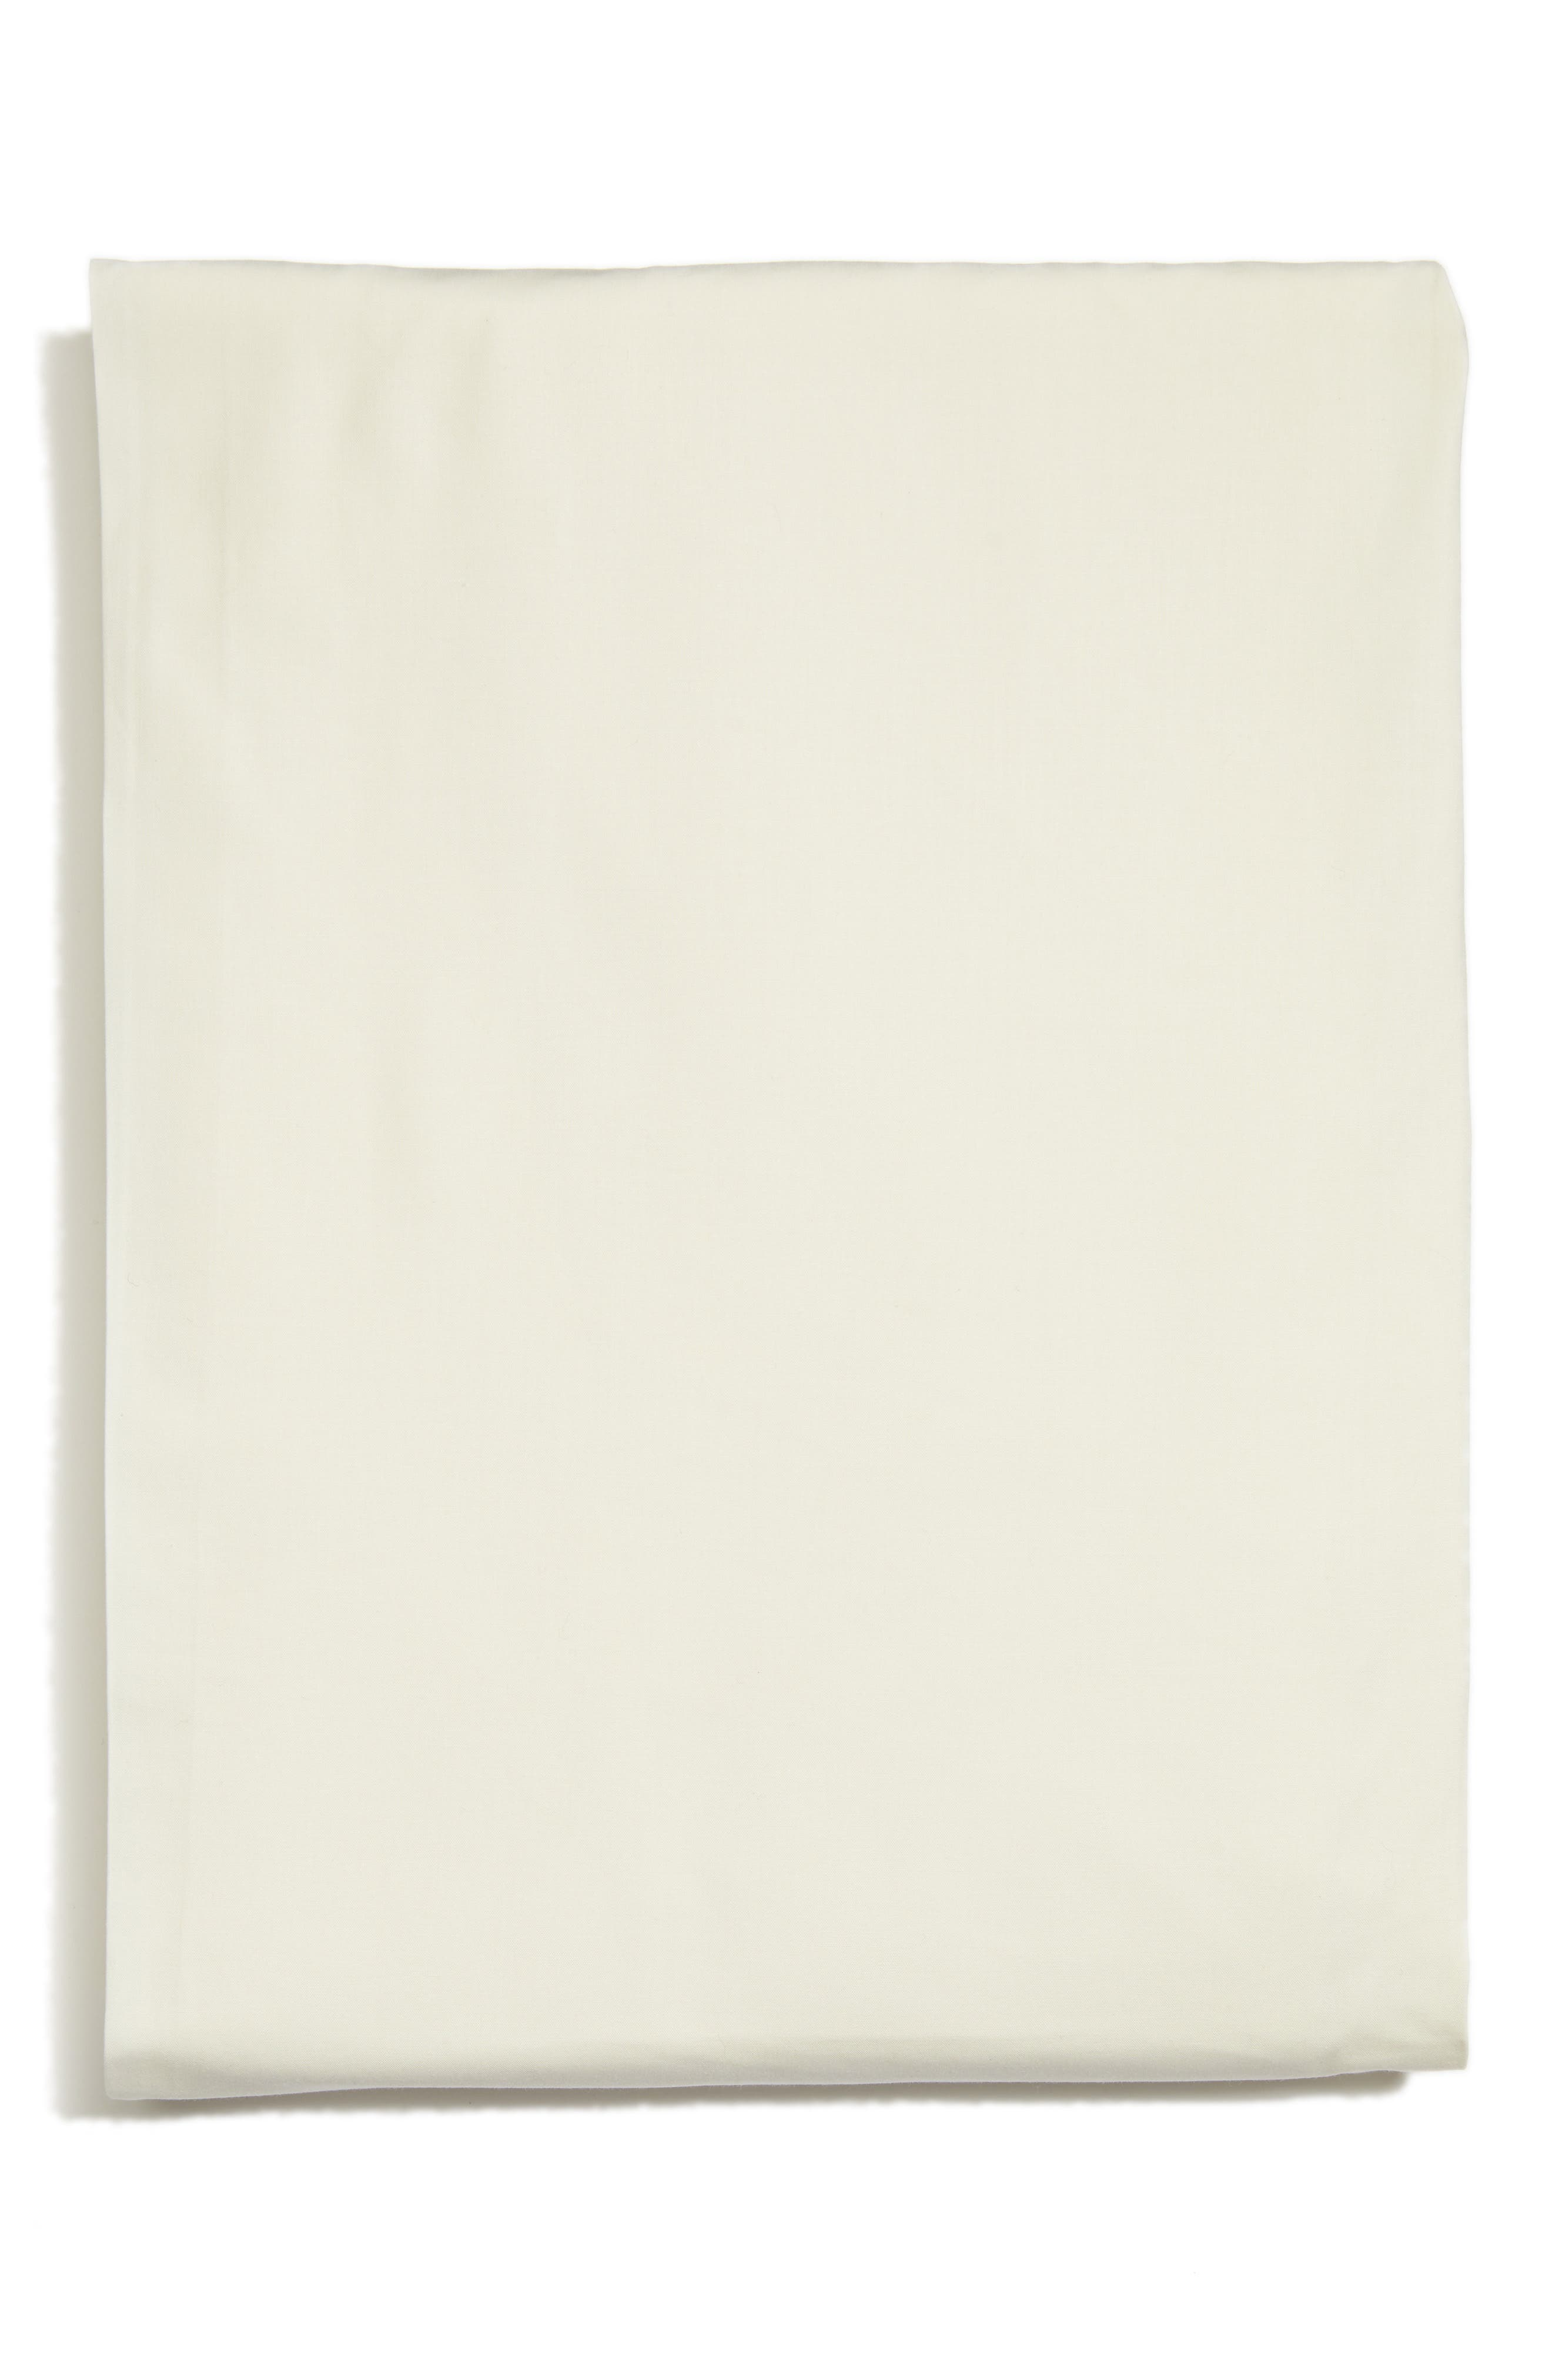 Grande Hotel Fitted Sheet,                             Main thumbnail 1, color,                             Ivory